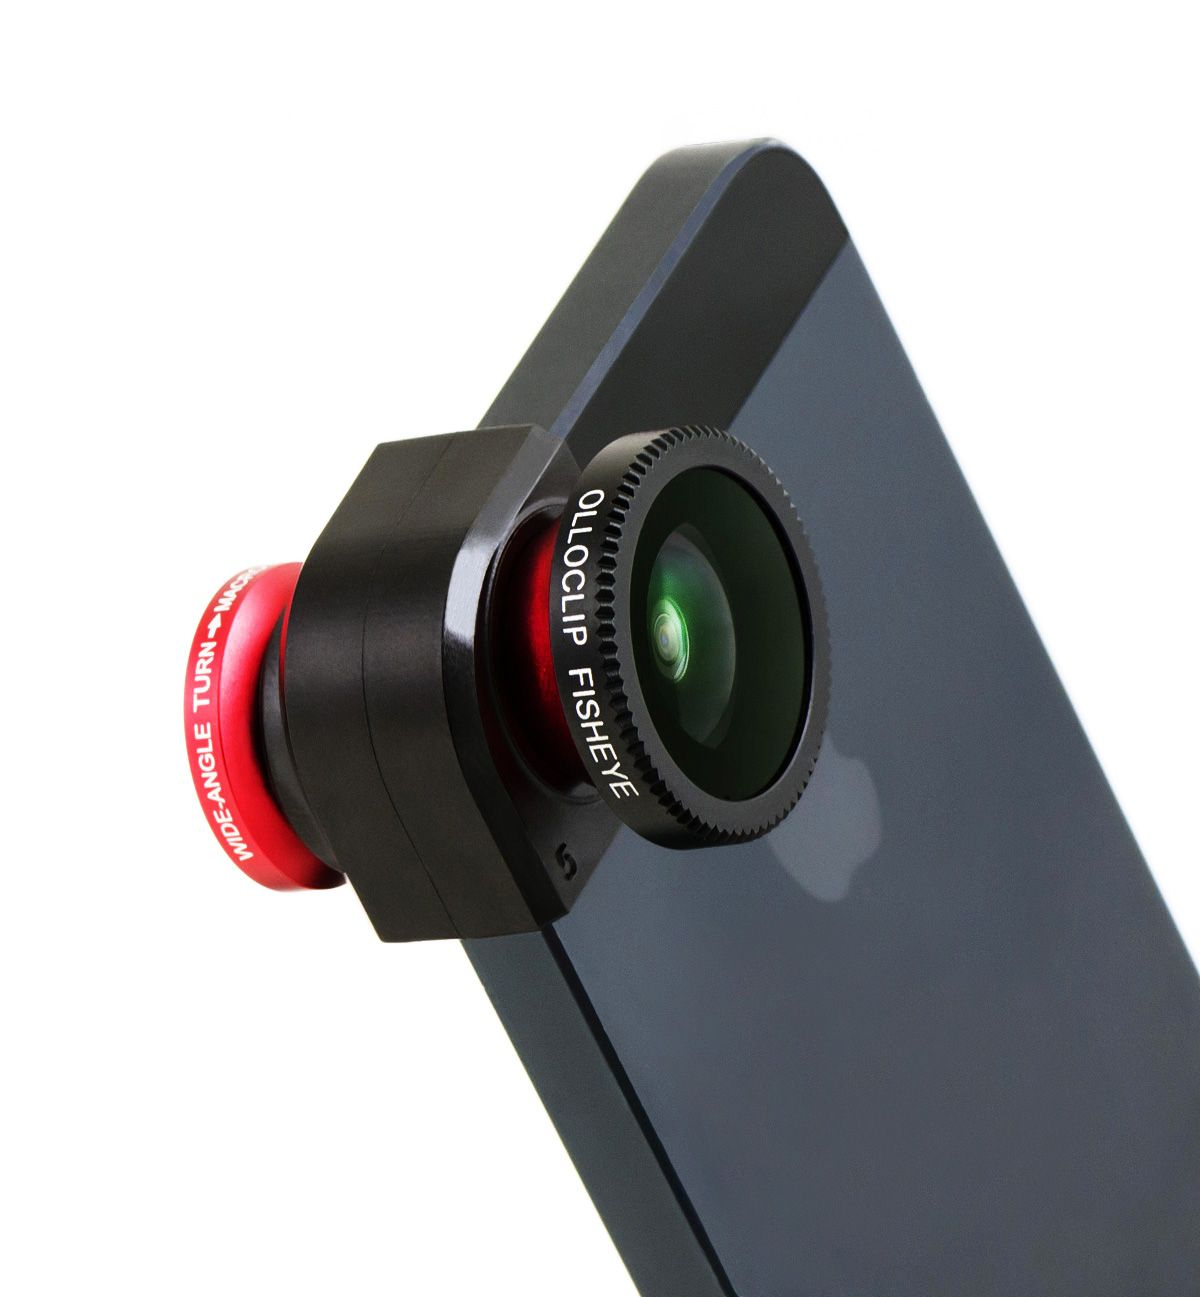 Cool Car Gifts For Guys: Camera Lens For IPhone, Olloclip